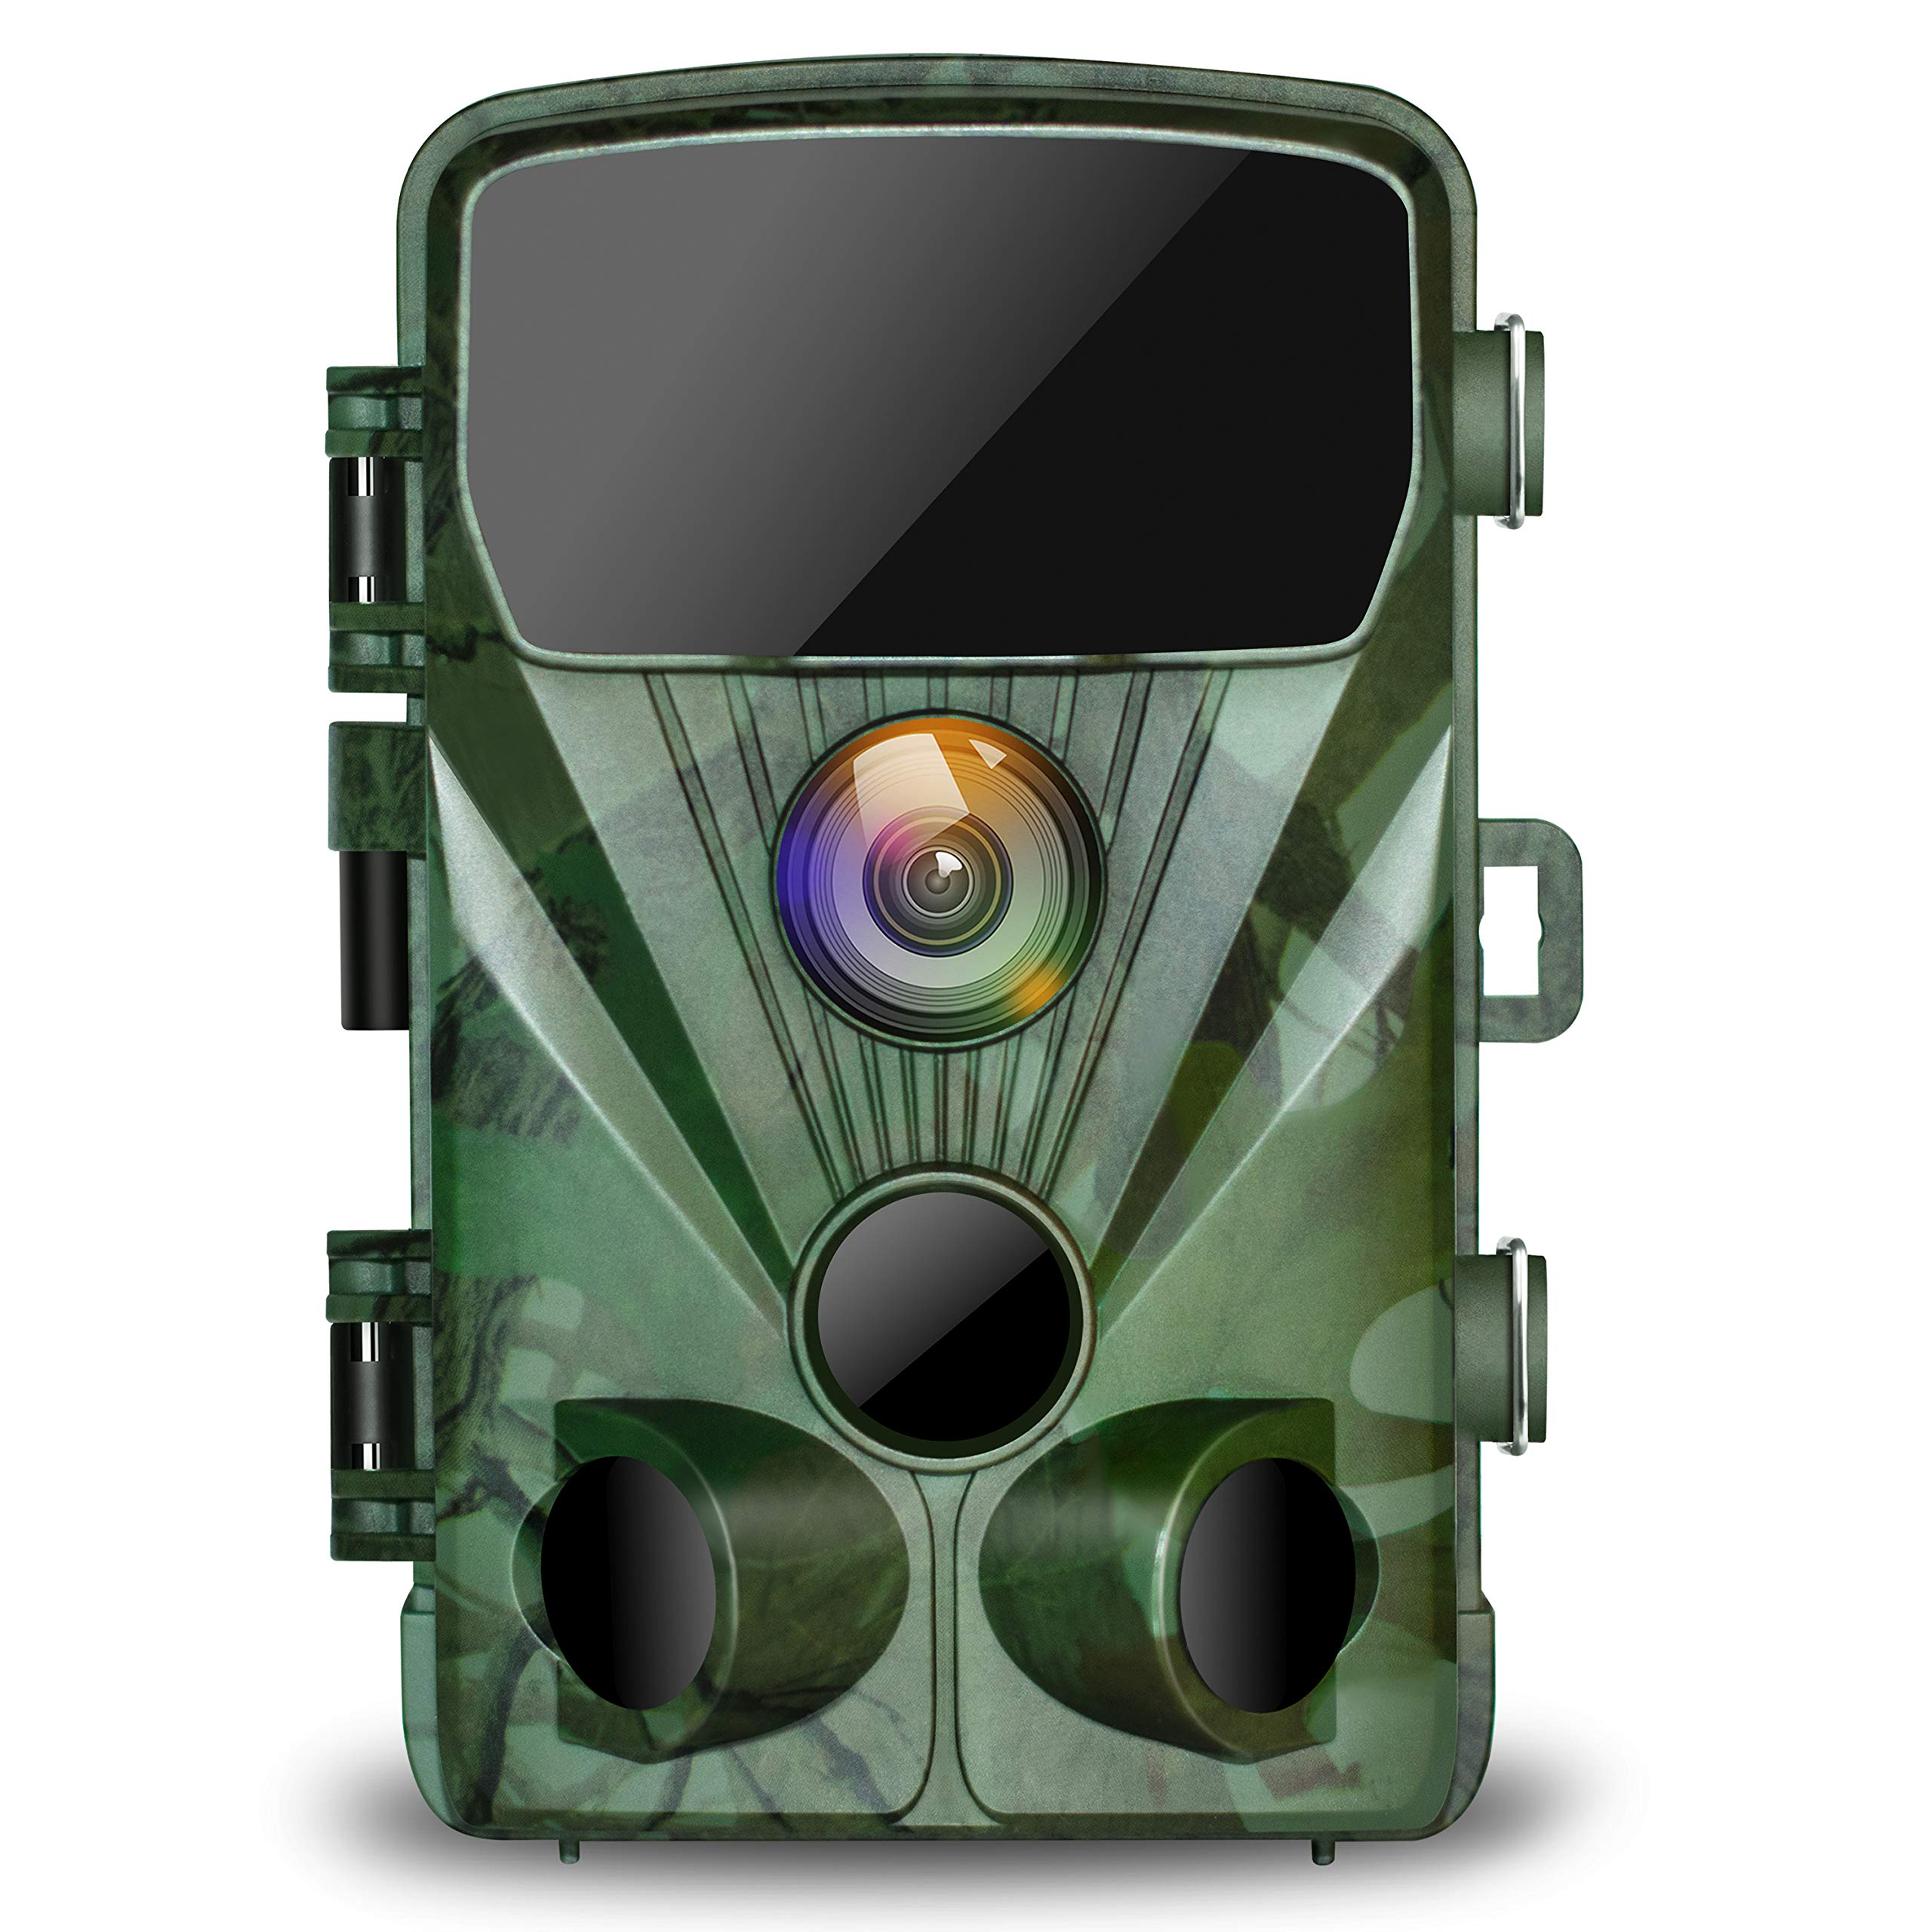 TOGUARD Trail Camera 20MP 1080P Hunting Game Cameras with Night Vision 130° Detection Motion Activated Waterproof Wildlife Hunting Cam with 0.3s Trigger Speed 2.4'' LCD IR LEDs